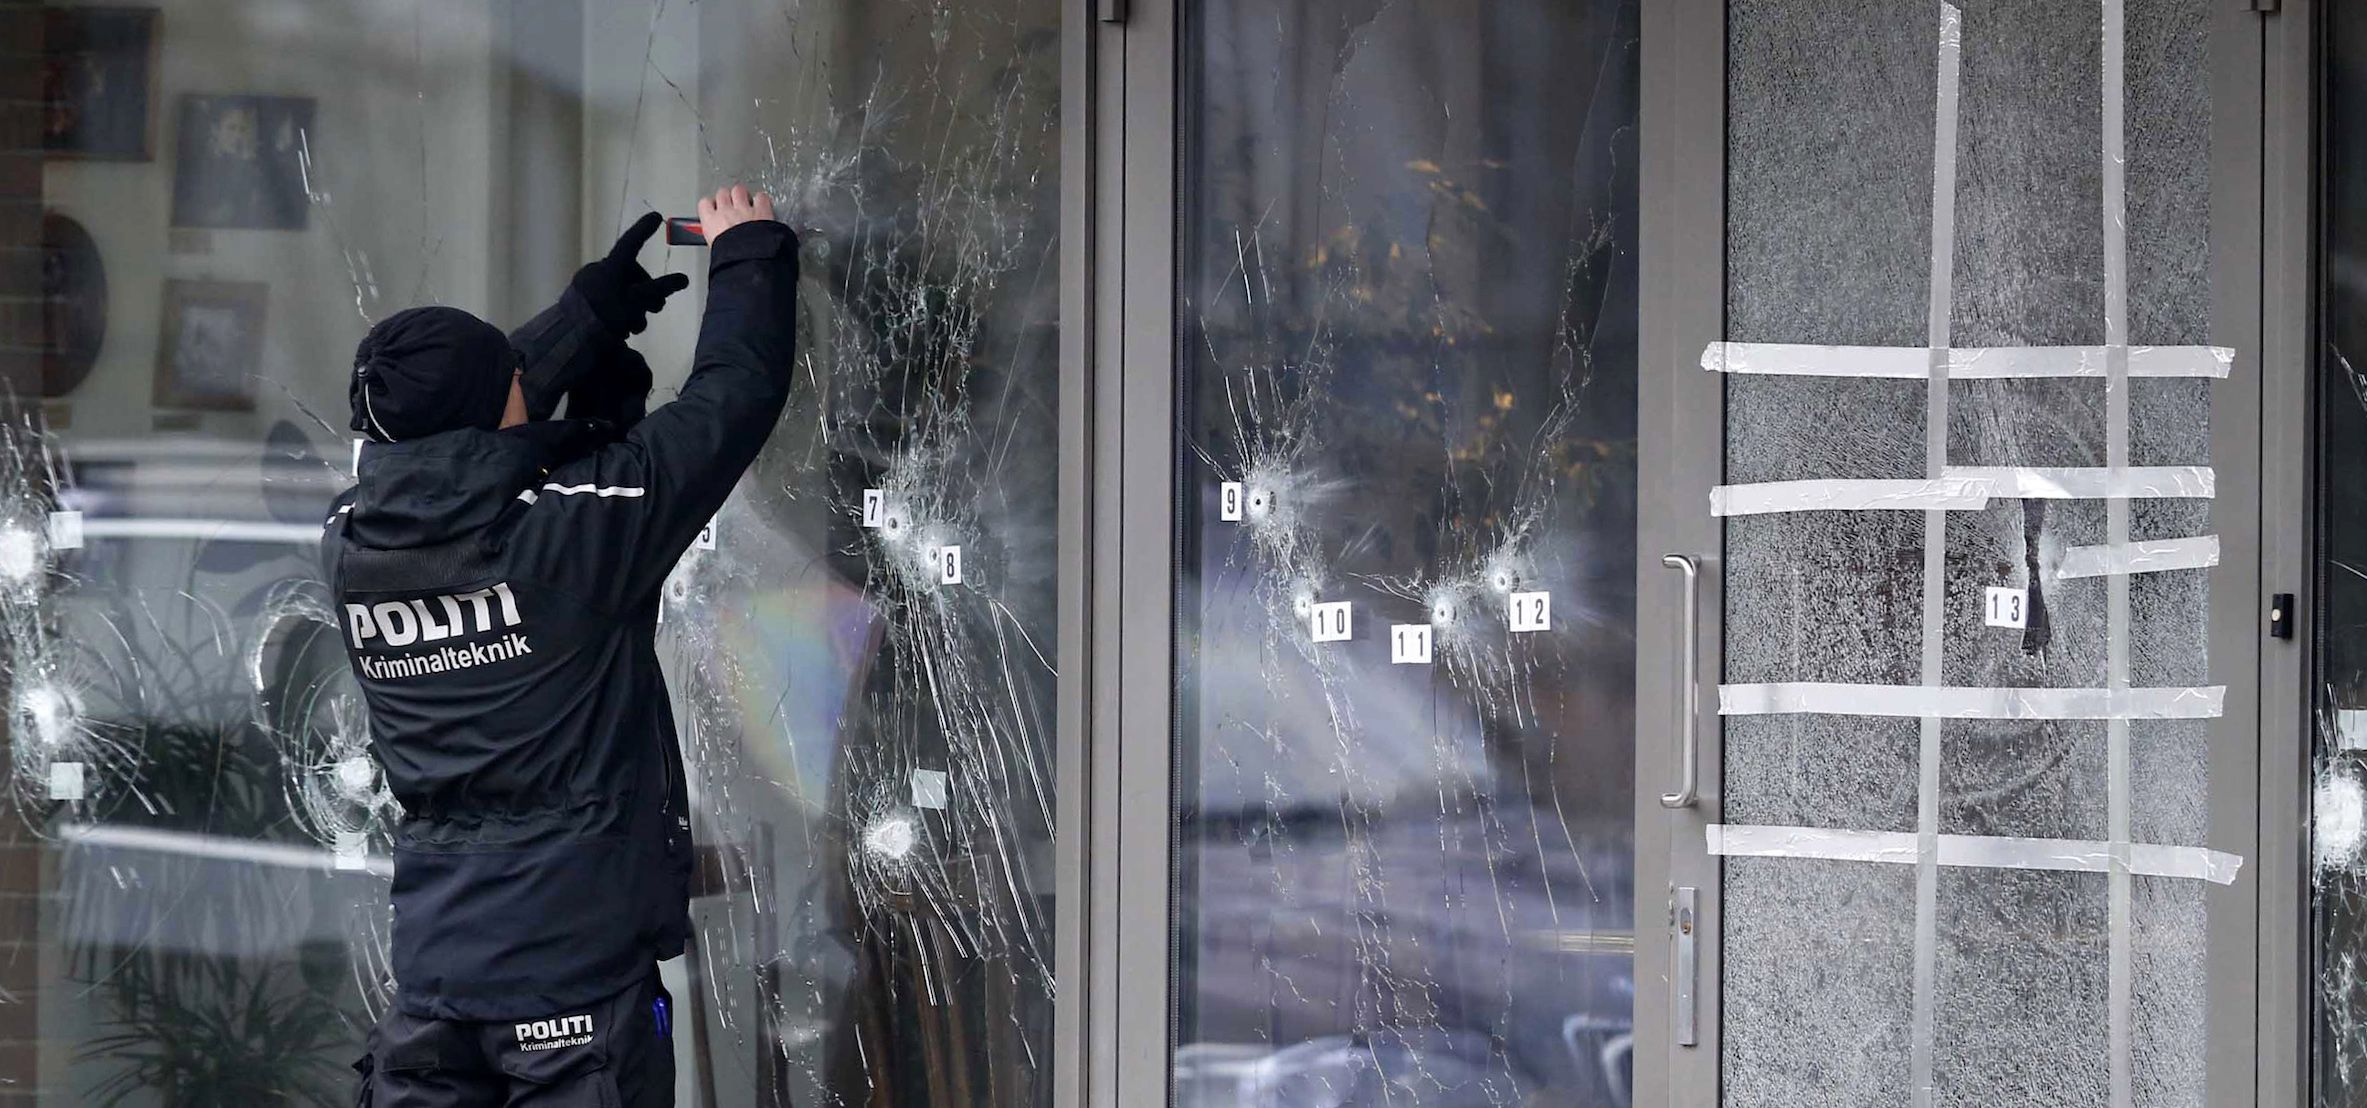 A police investigator works at the scene of Saturday's shooting at a free speech event in Copenhagen, Sunday, Feb. 15, 2015. Danish police shot and killed a man early Sunday suspected of carrying out shooting attacks at a free speech event and then at a Copenhagen synagogue, killing two men, including a member of Denmark's Jewish community. Five police officers were also wounded in the attacks. (AP Photo/Polfoto, Jens Dresling) DENMARK OUT